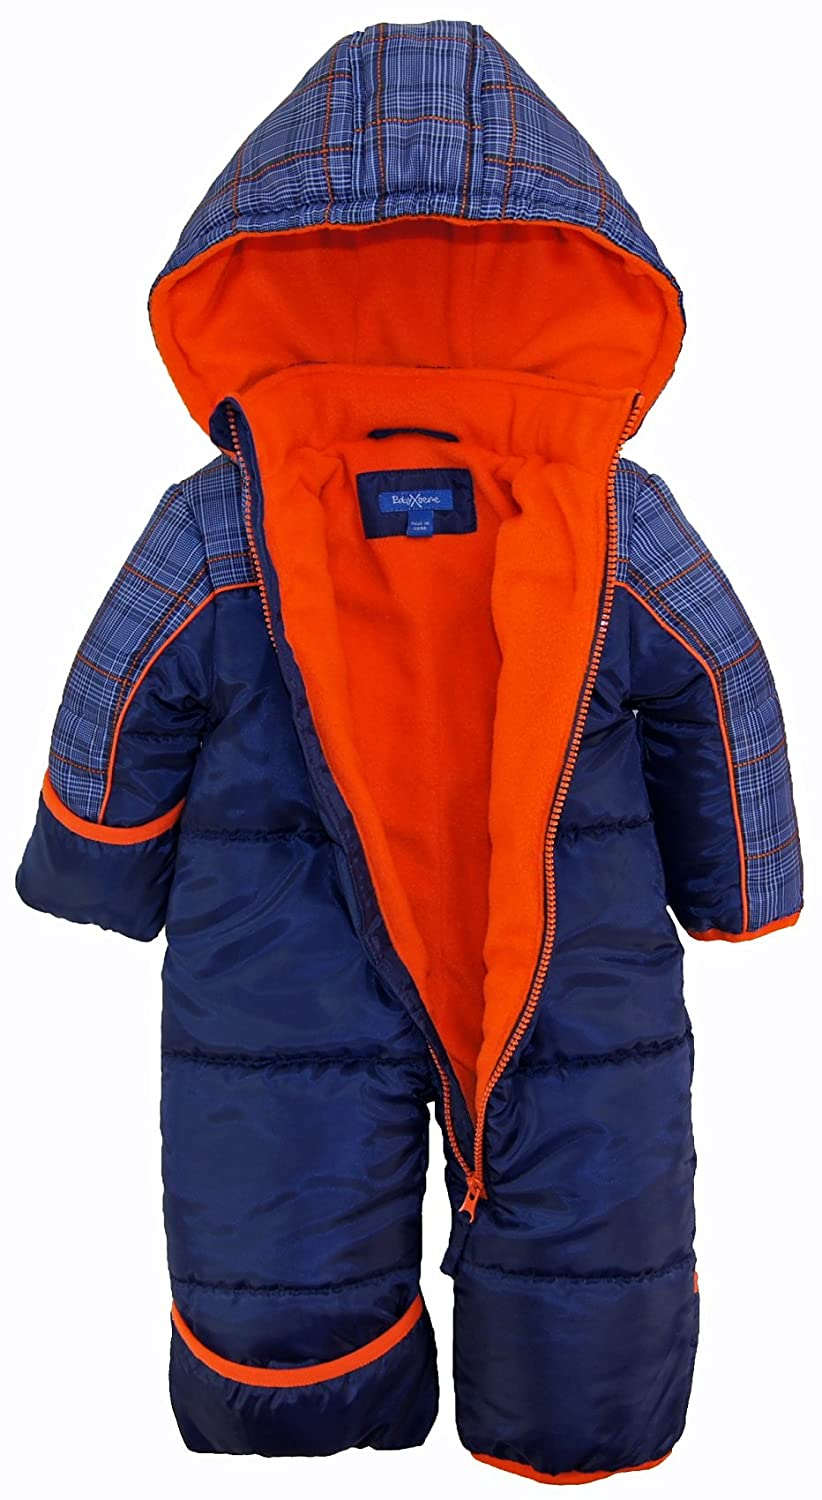 af6c9d799053 Amazon.com  iXtreme Baby Boys Plaid Expedition Puffer Winter ...